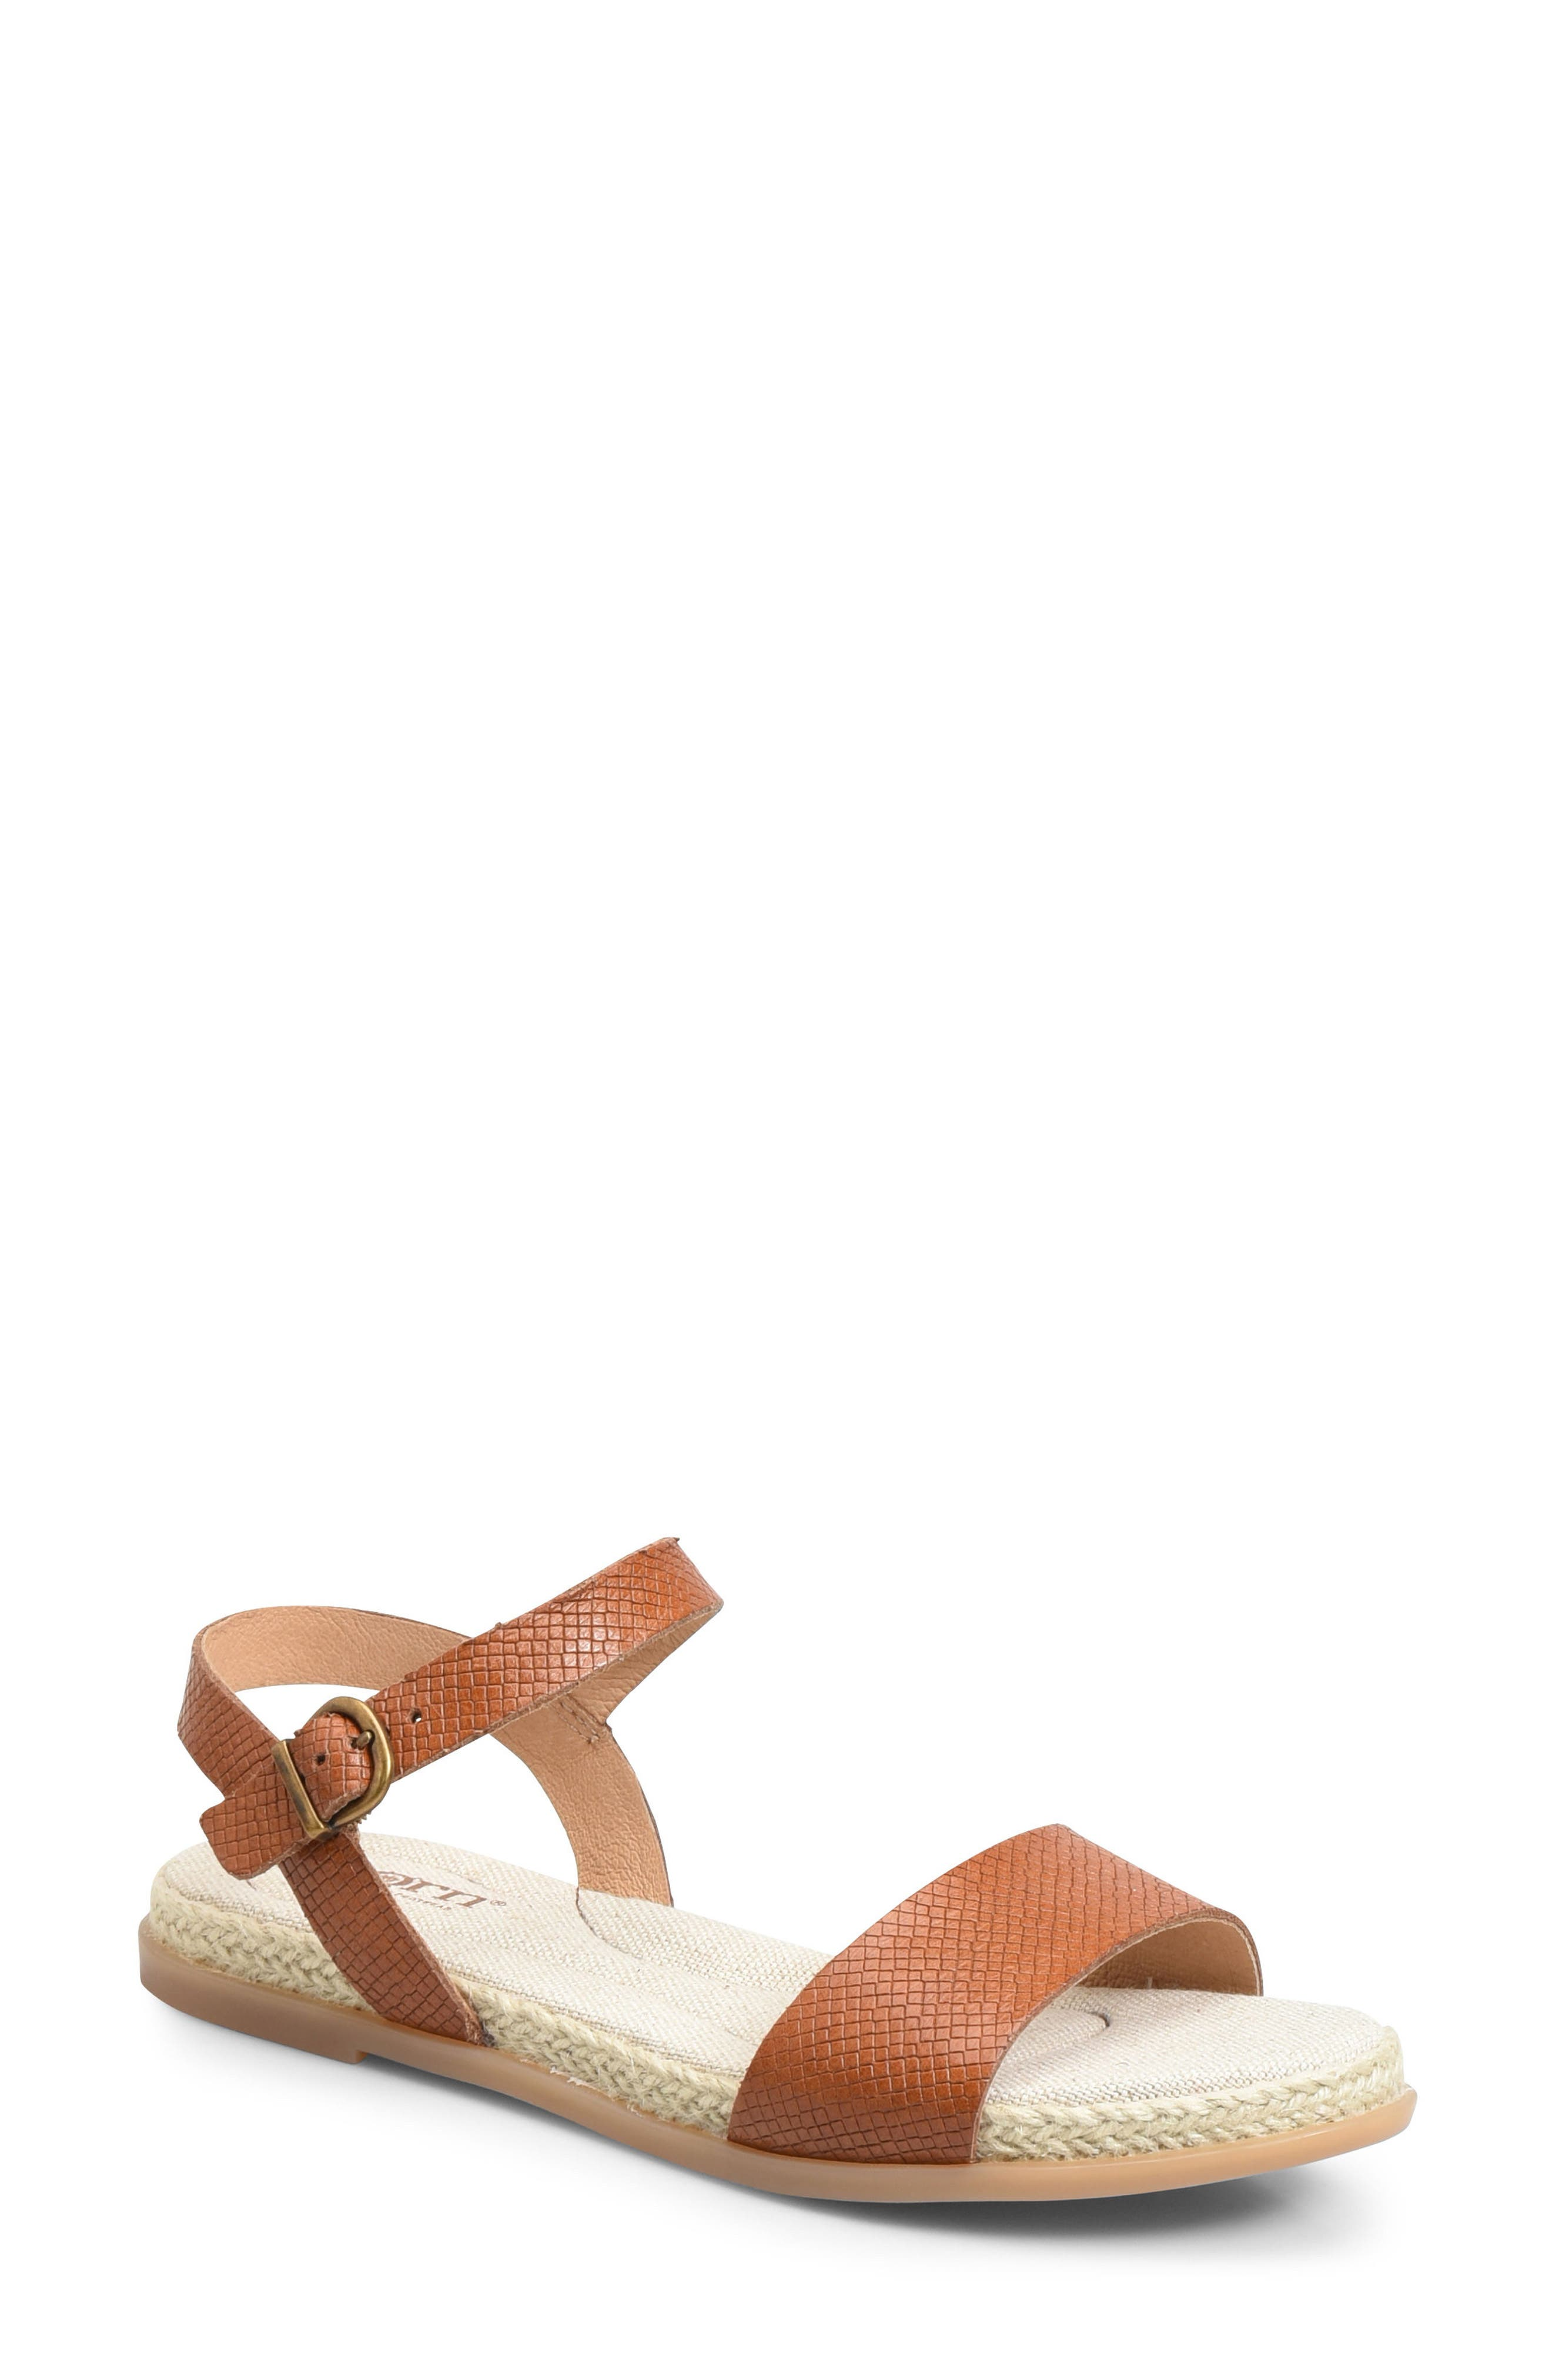 Welch Sandal,                             Main thumbnail 1, color,                             Brown Leather